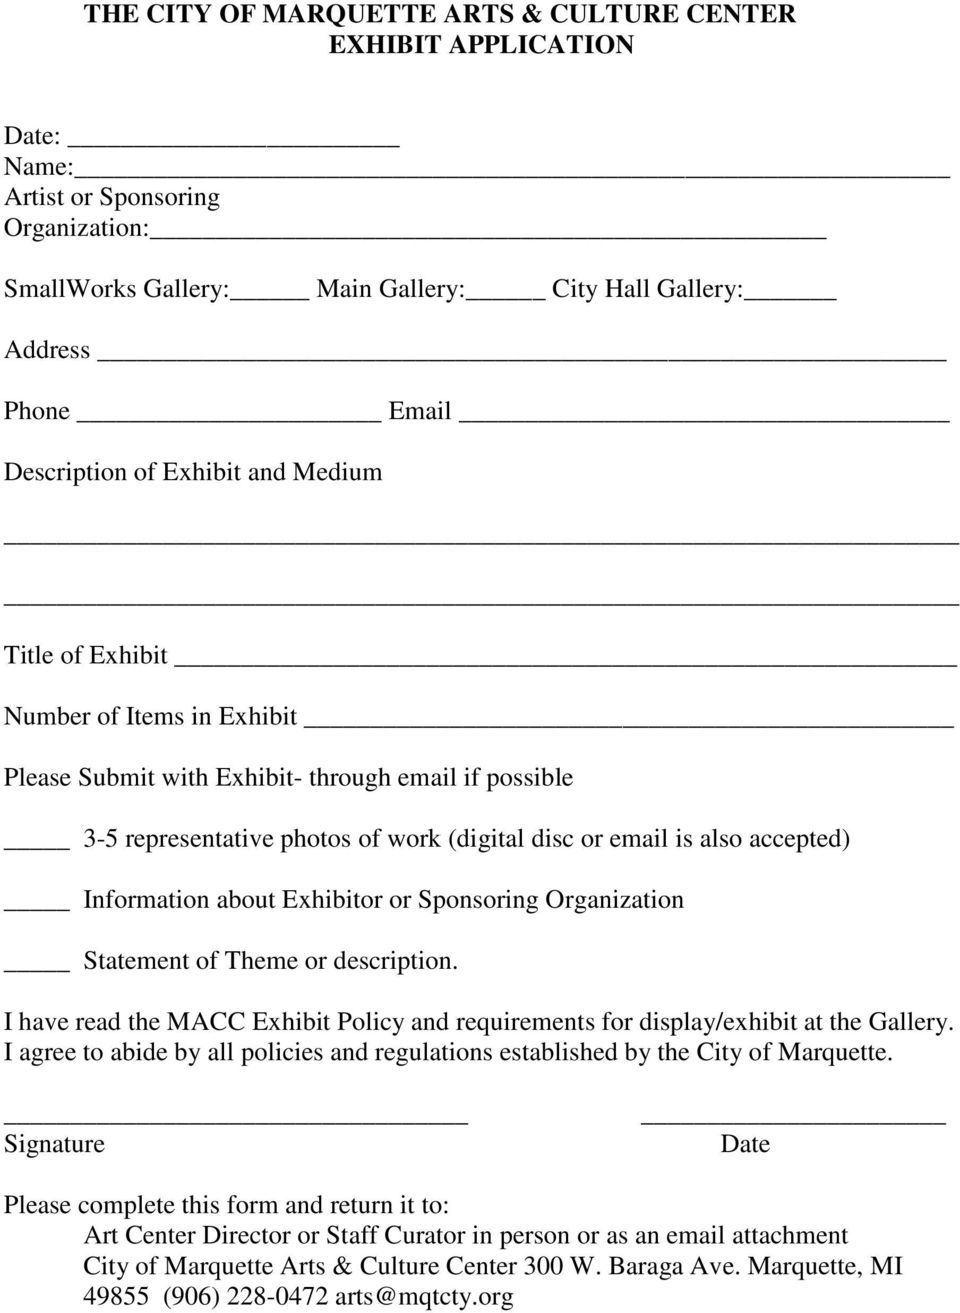 Information about Exhibitor or Sponsoring Organization Statement of Theme or description. I have read the MACC Exhibit Policy and requirements for display/exhibit at the Gallery.